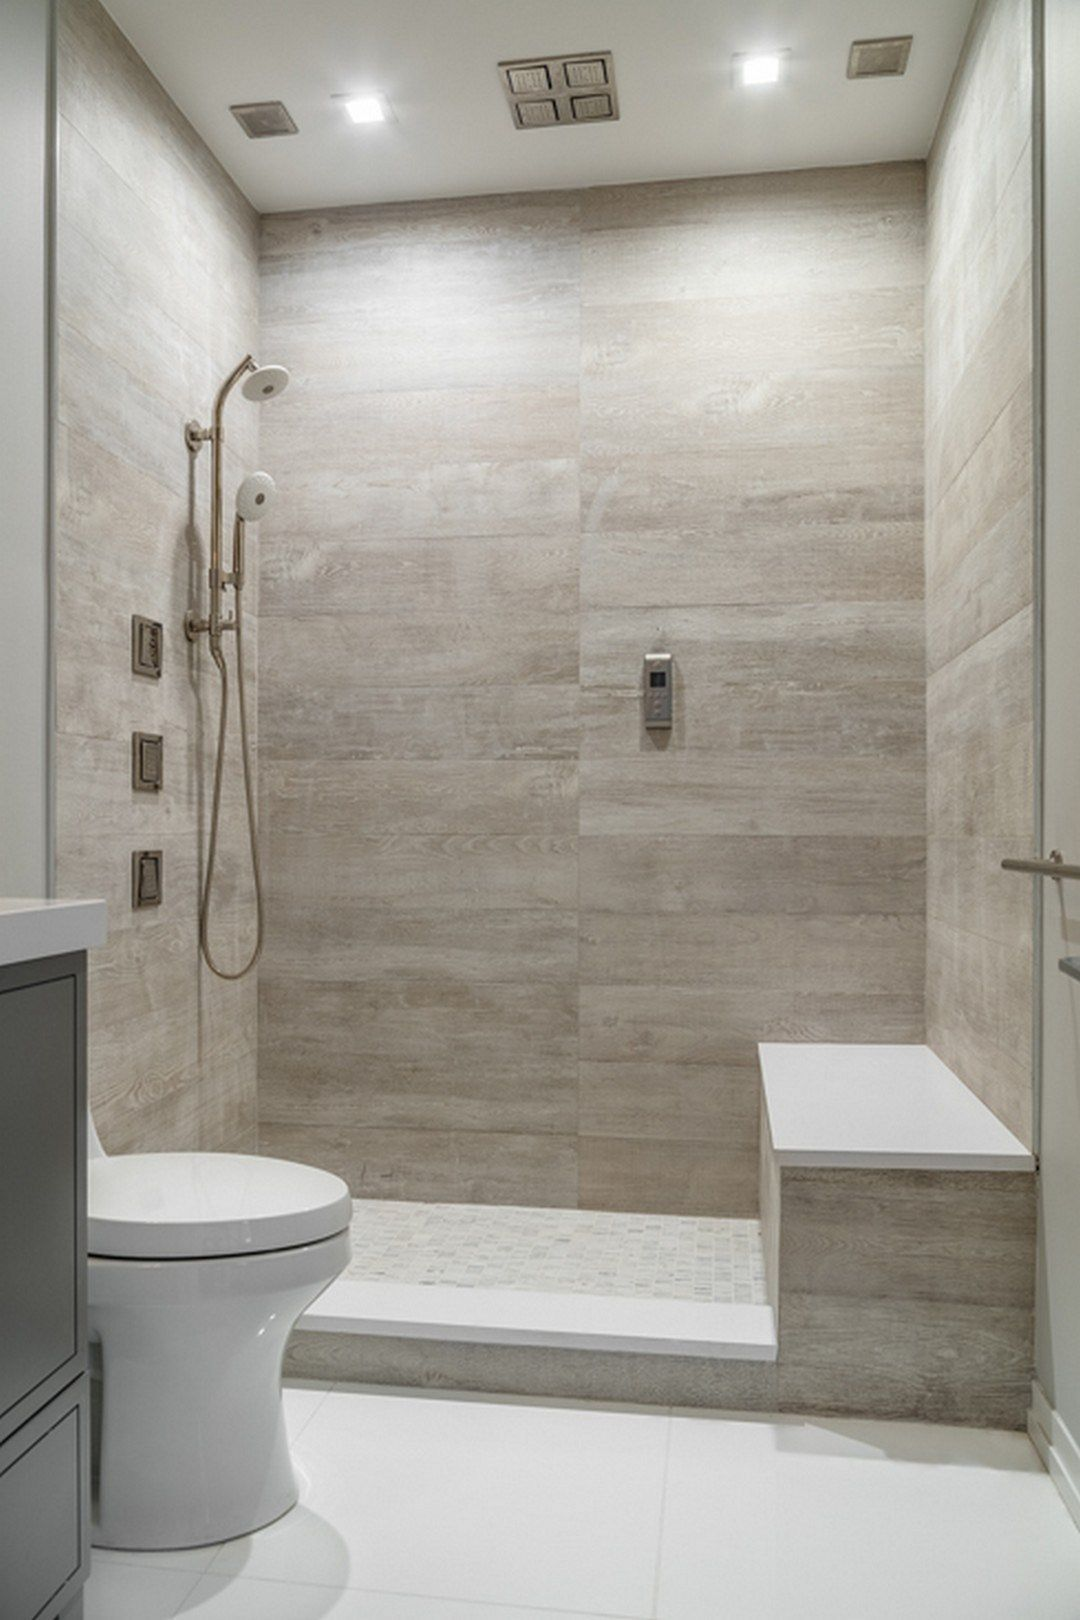 Awesome Ceramic Tile For Bathroom: 65+ Best Inspirations